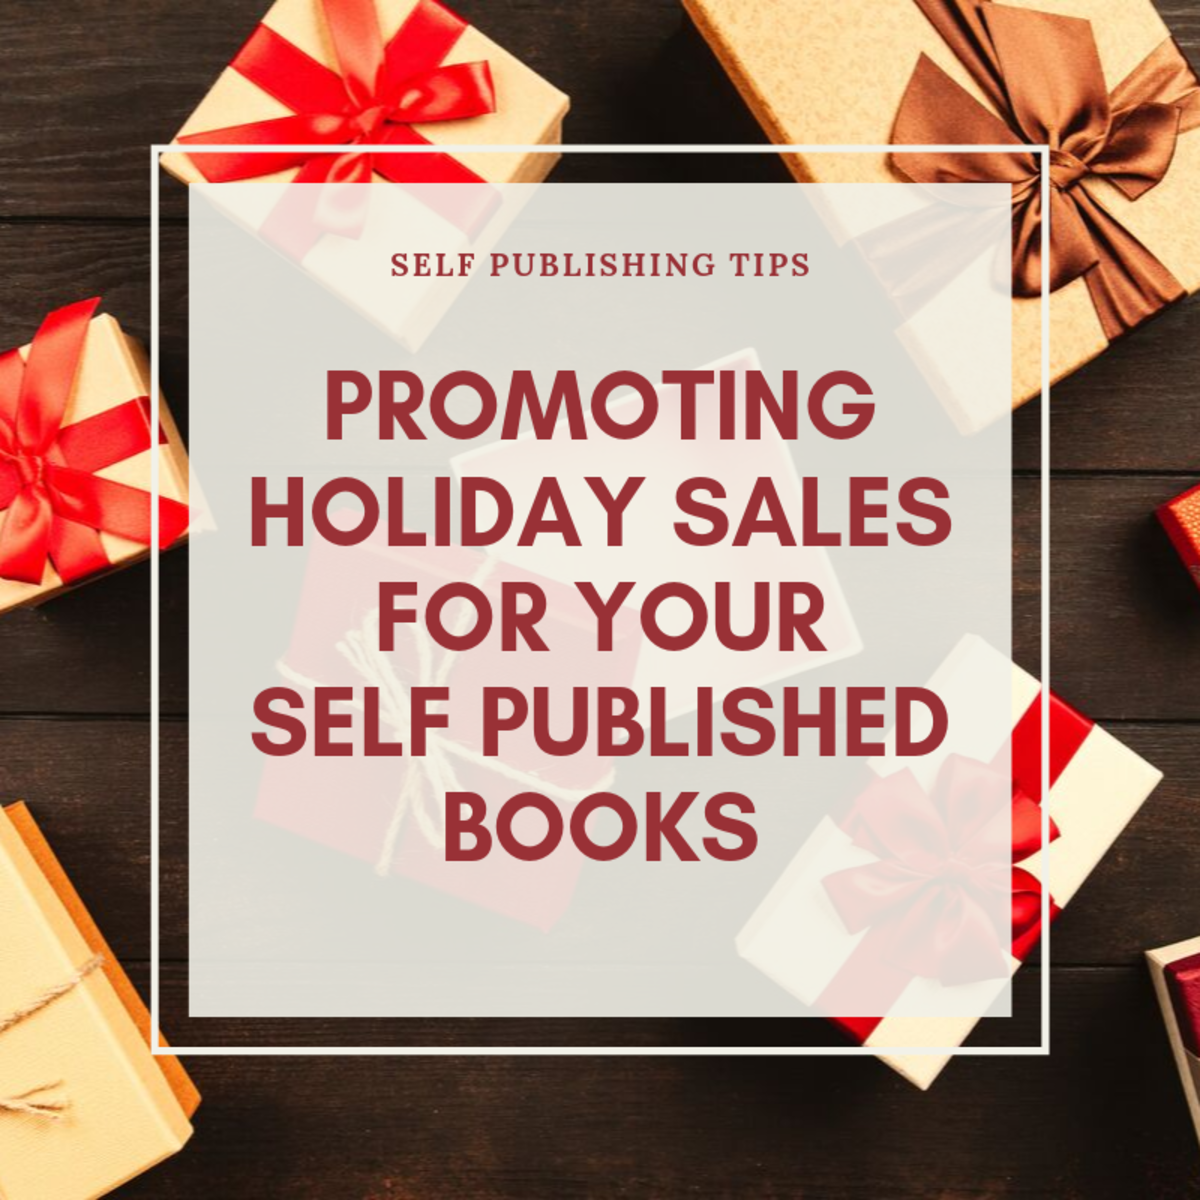 Promoting Holiday Sales for Your Self Published Books